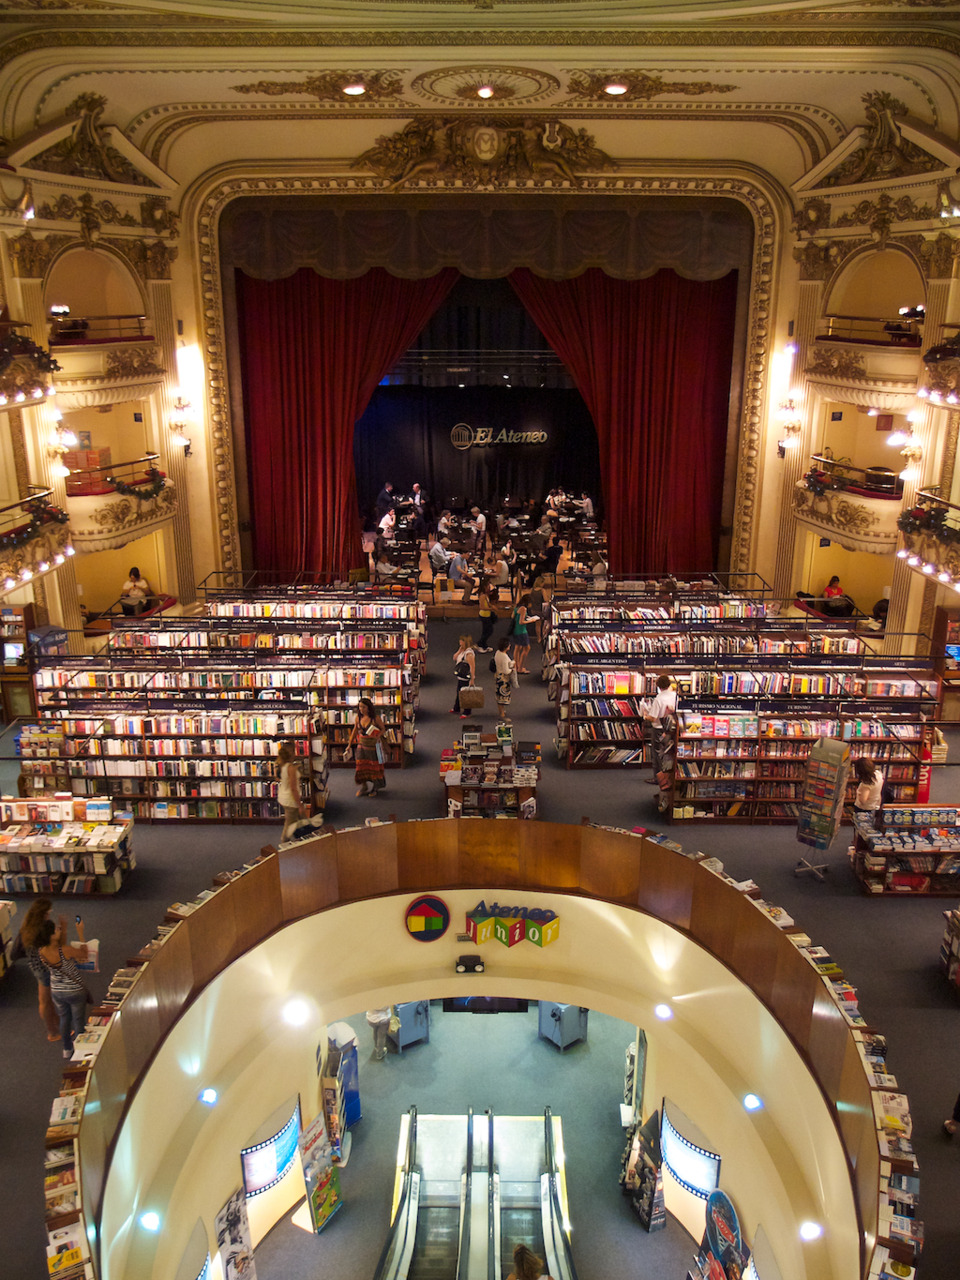 El Ateneo Grand Splendid, the second most beautiful bookstore in the world according to The Guardian, in Buenos Aires, Argentina. December 19th, 2011.